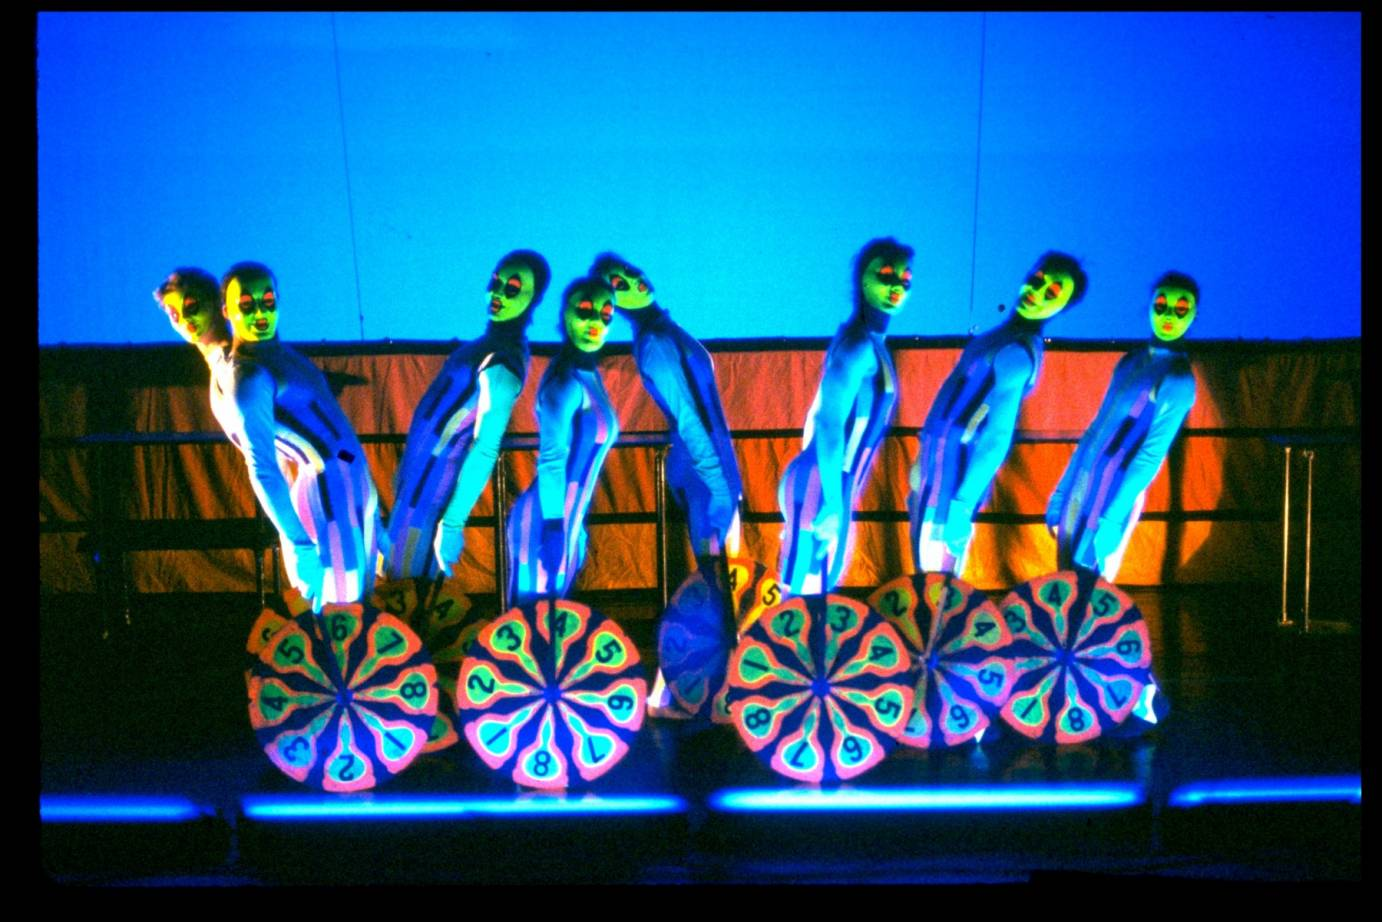 Dancers resembling clowns with neon green faces and standing on or behind pin wheel-looking installations.